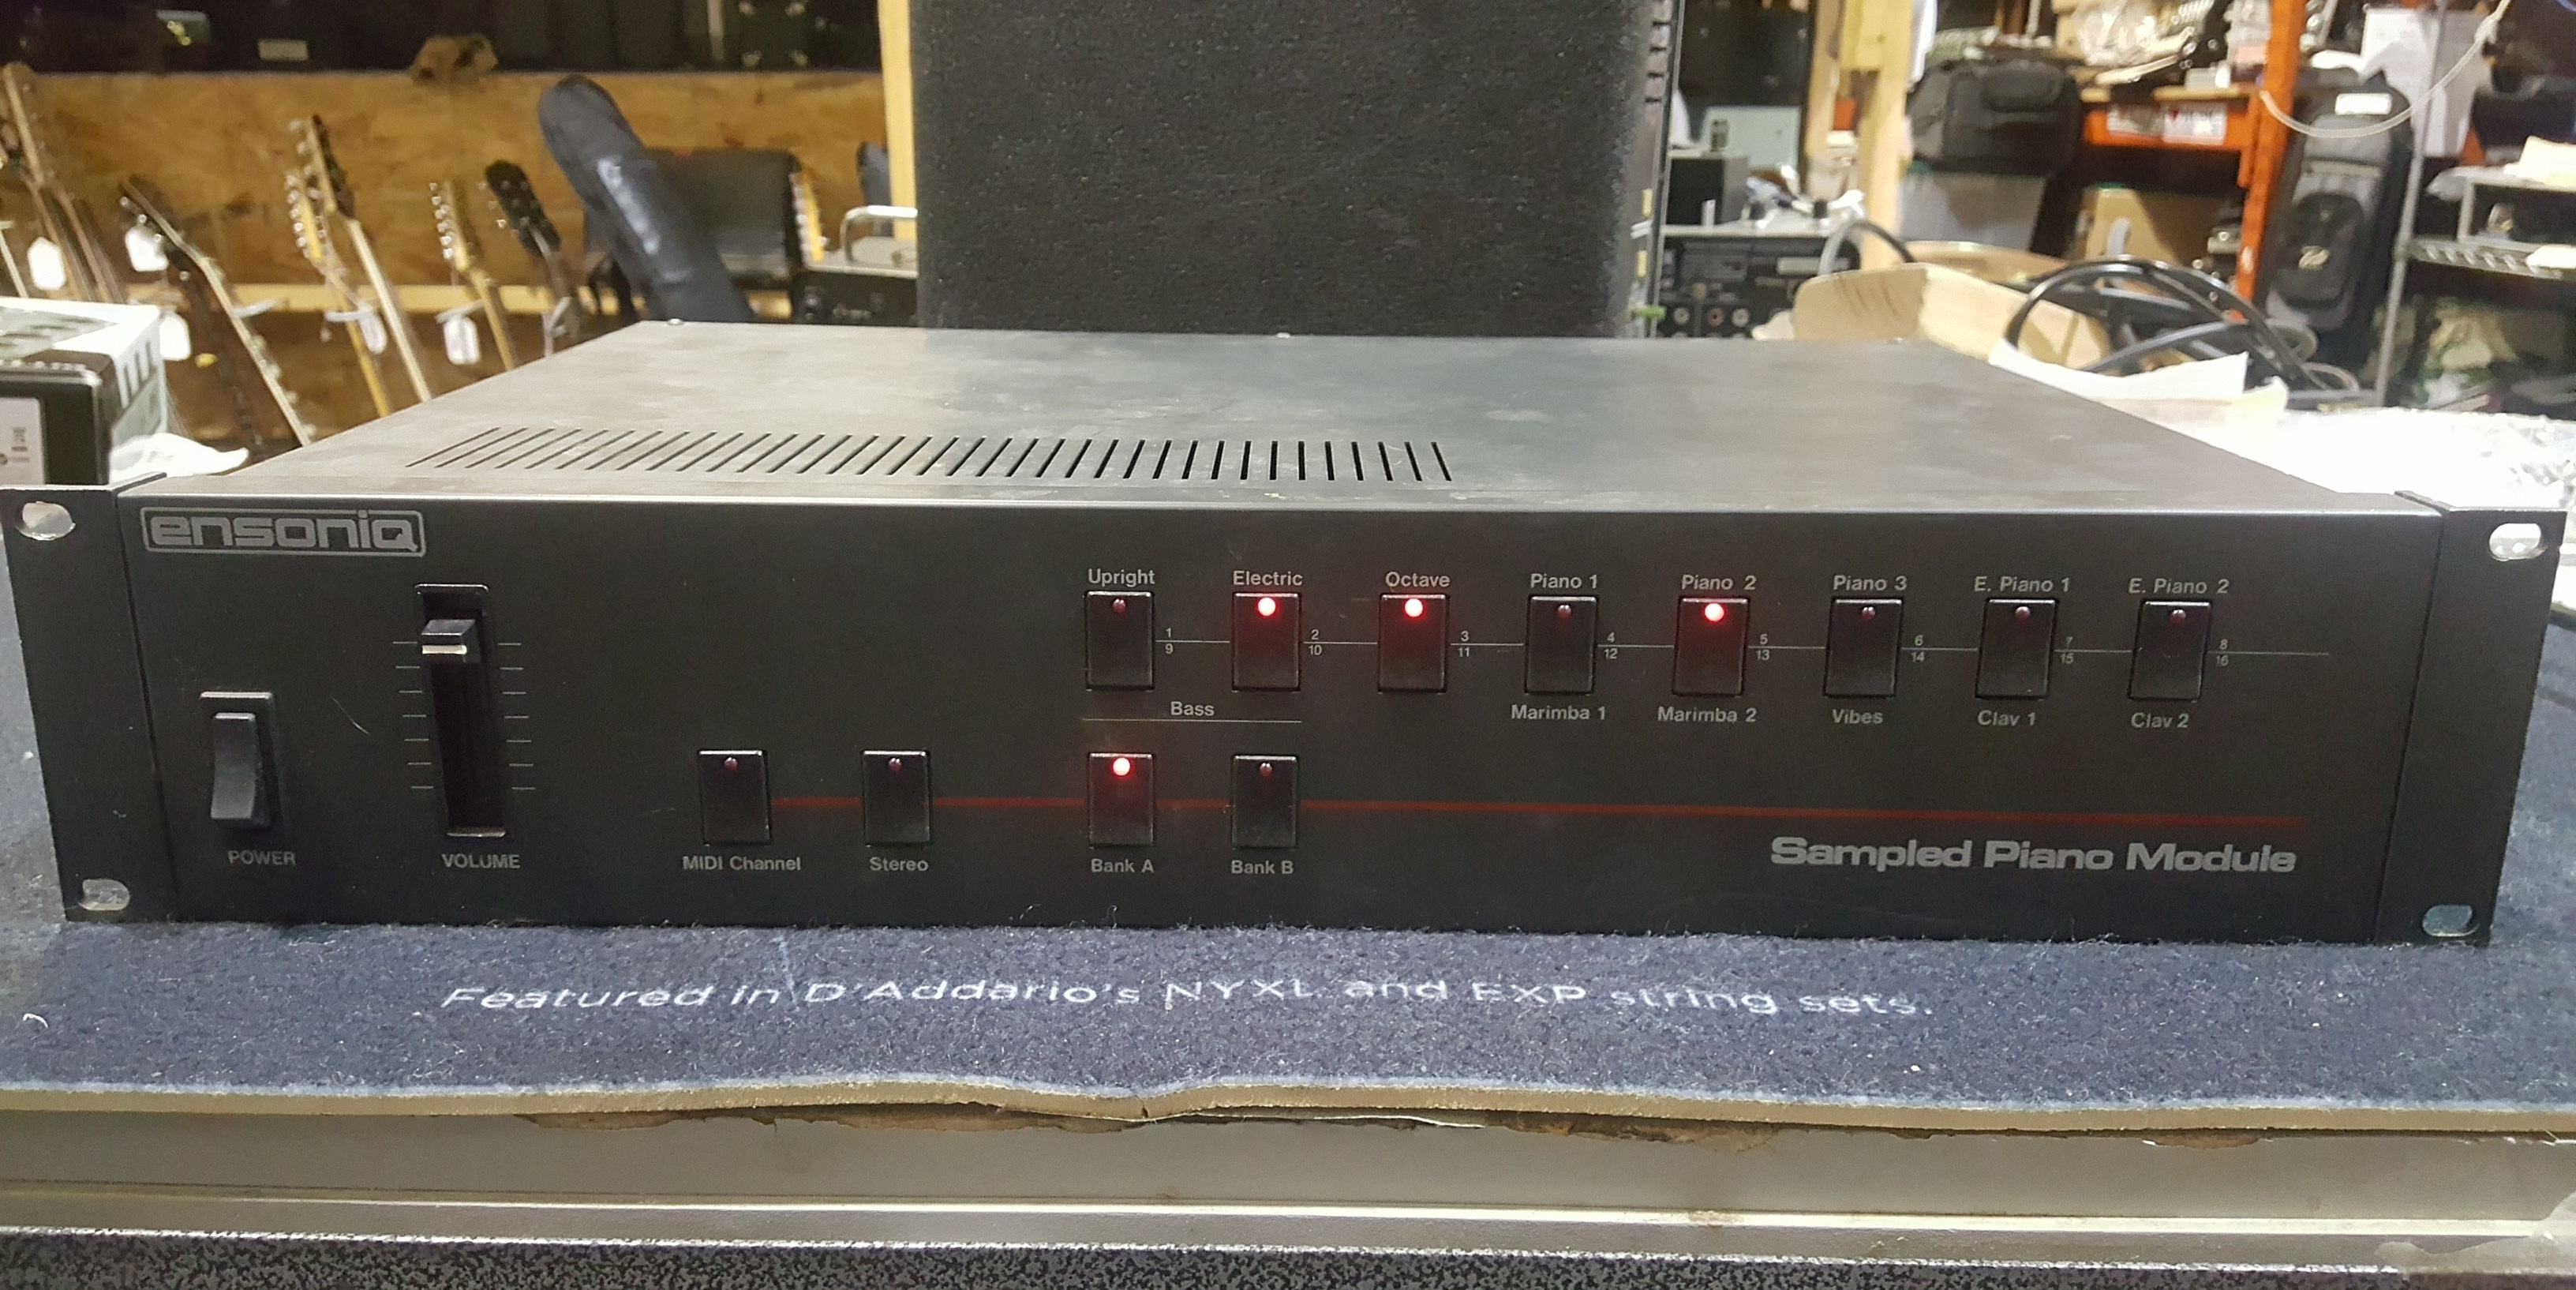 ENSONIQ SPM-1 SAMPLED PIANO MODULE Rackmount Unit